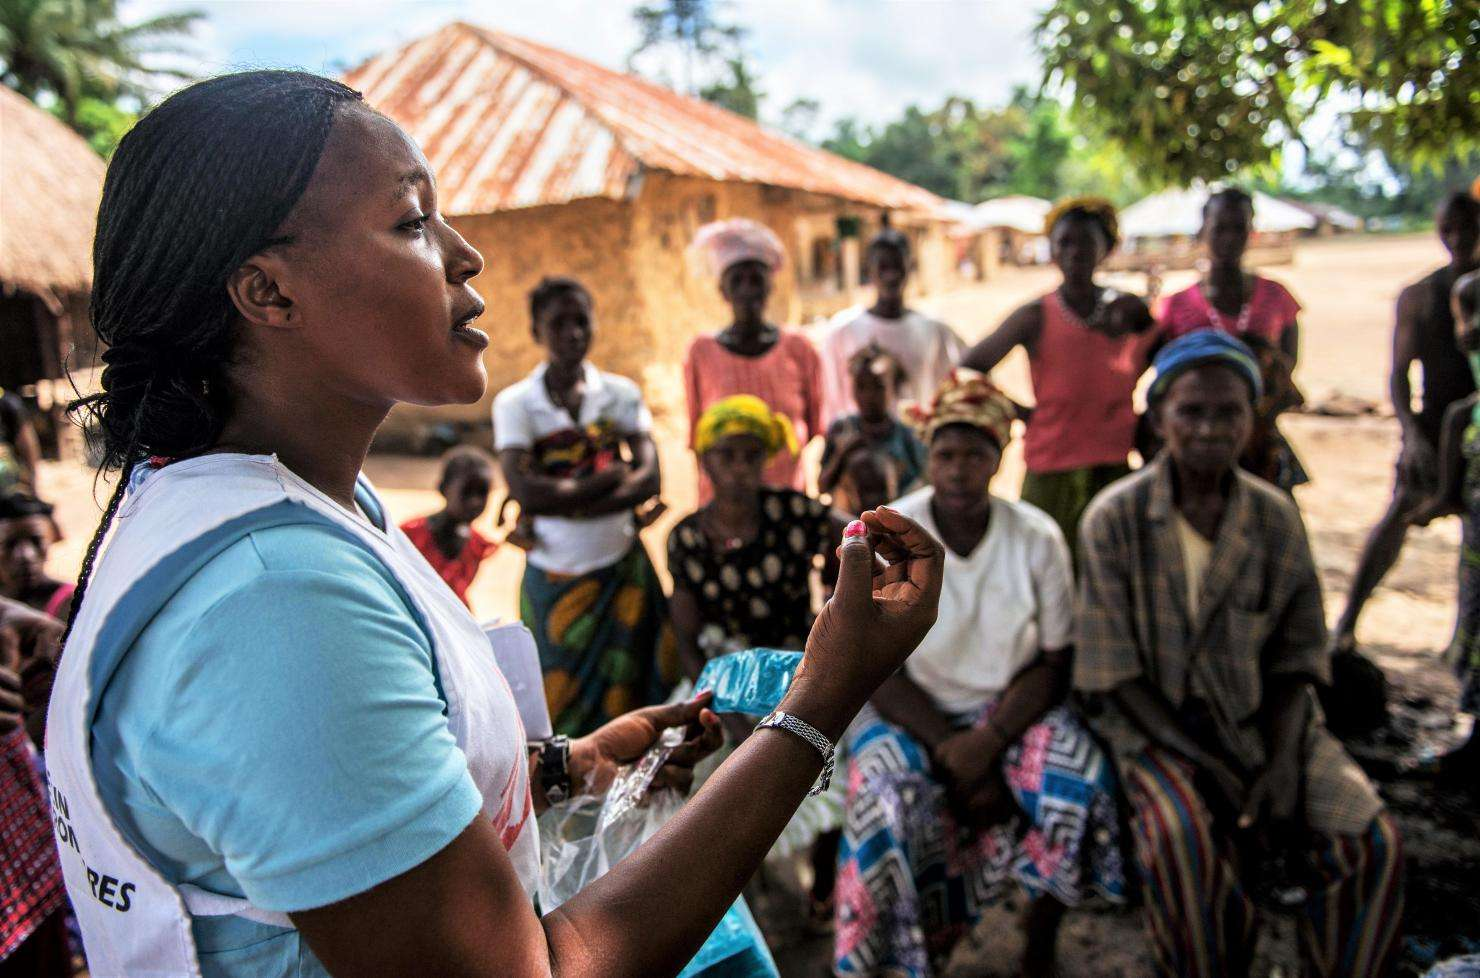 Health promoter, Emma Kamara, talks to villagers about health issues during a MSF outreach mission to treat survivors of Ebola.